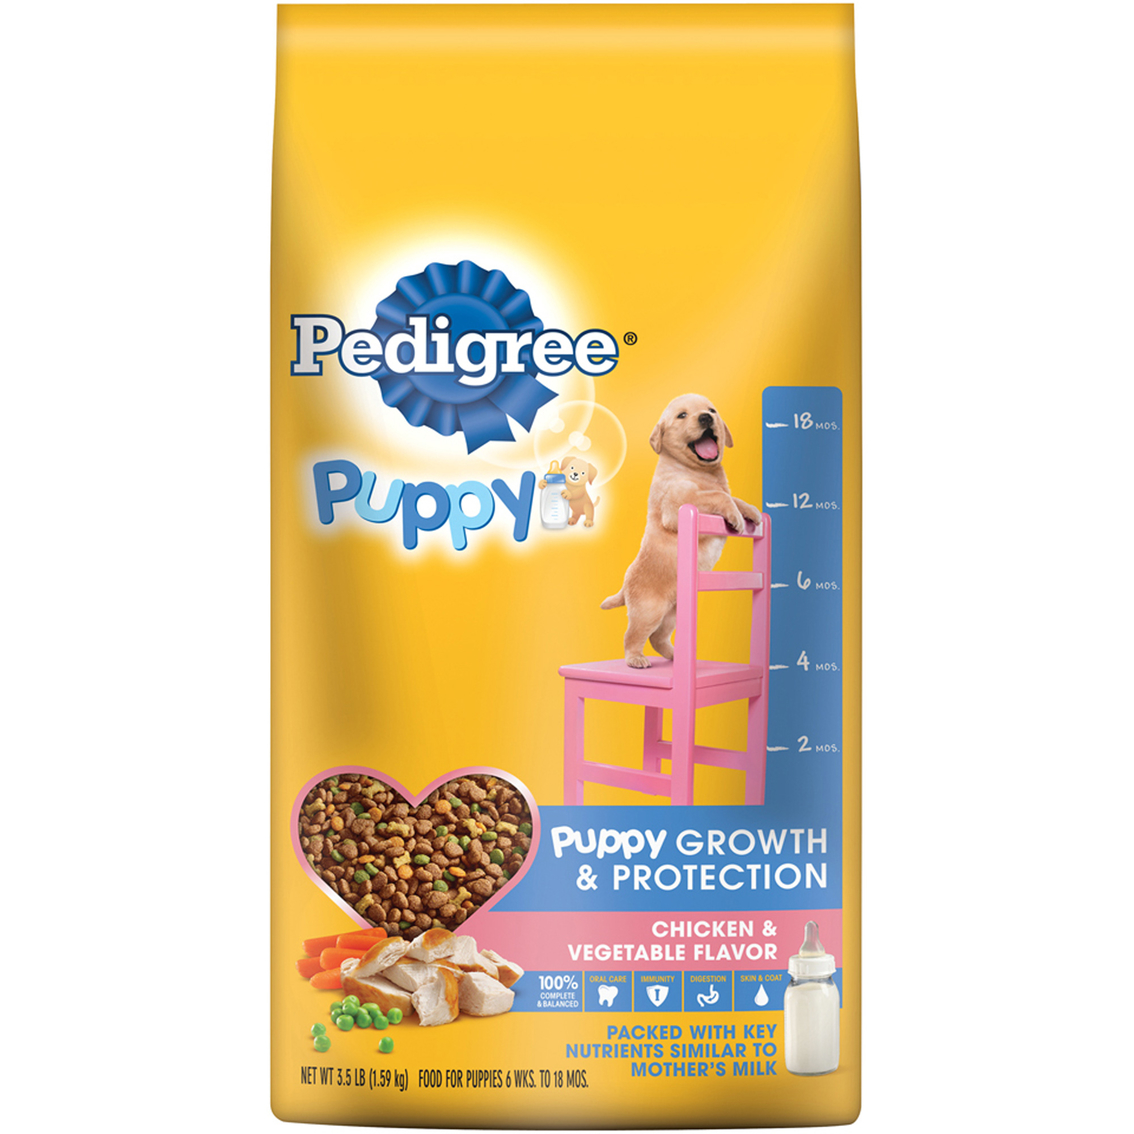 Pedigree Puppy Growth And Protection Chicken And Vegetable Dry Dog Food 3 5 Lb Food Treats Household Shop The Exchange